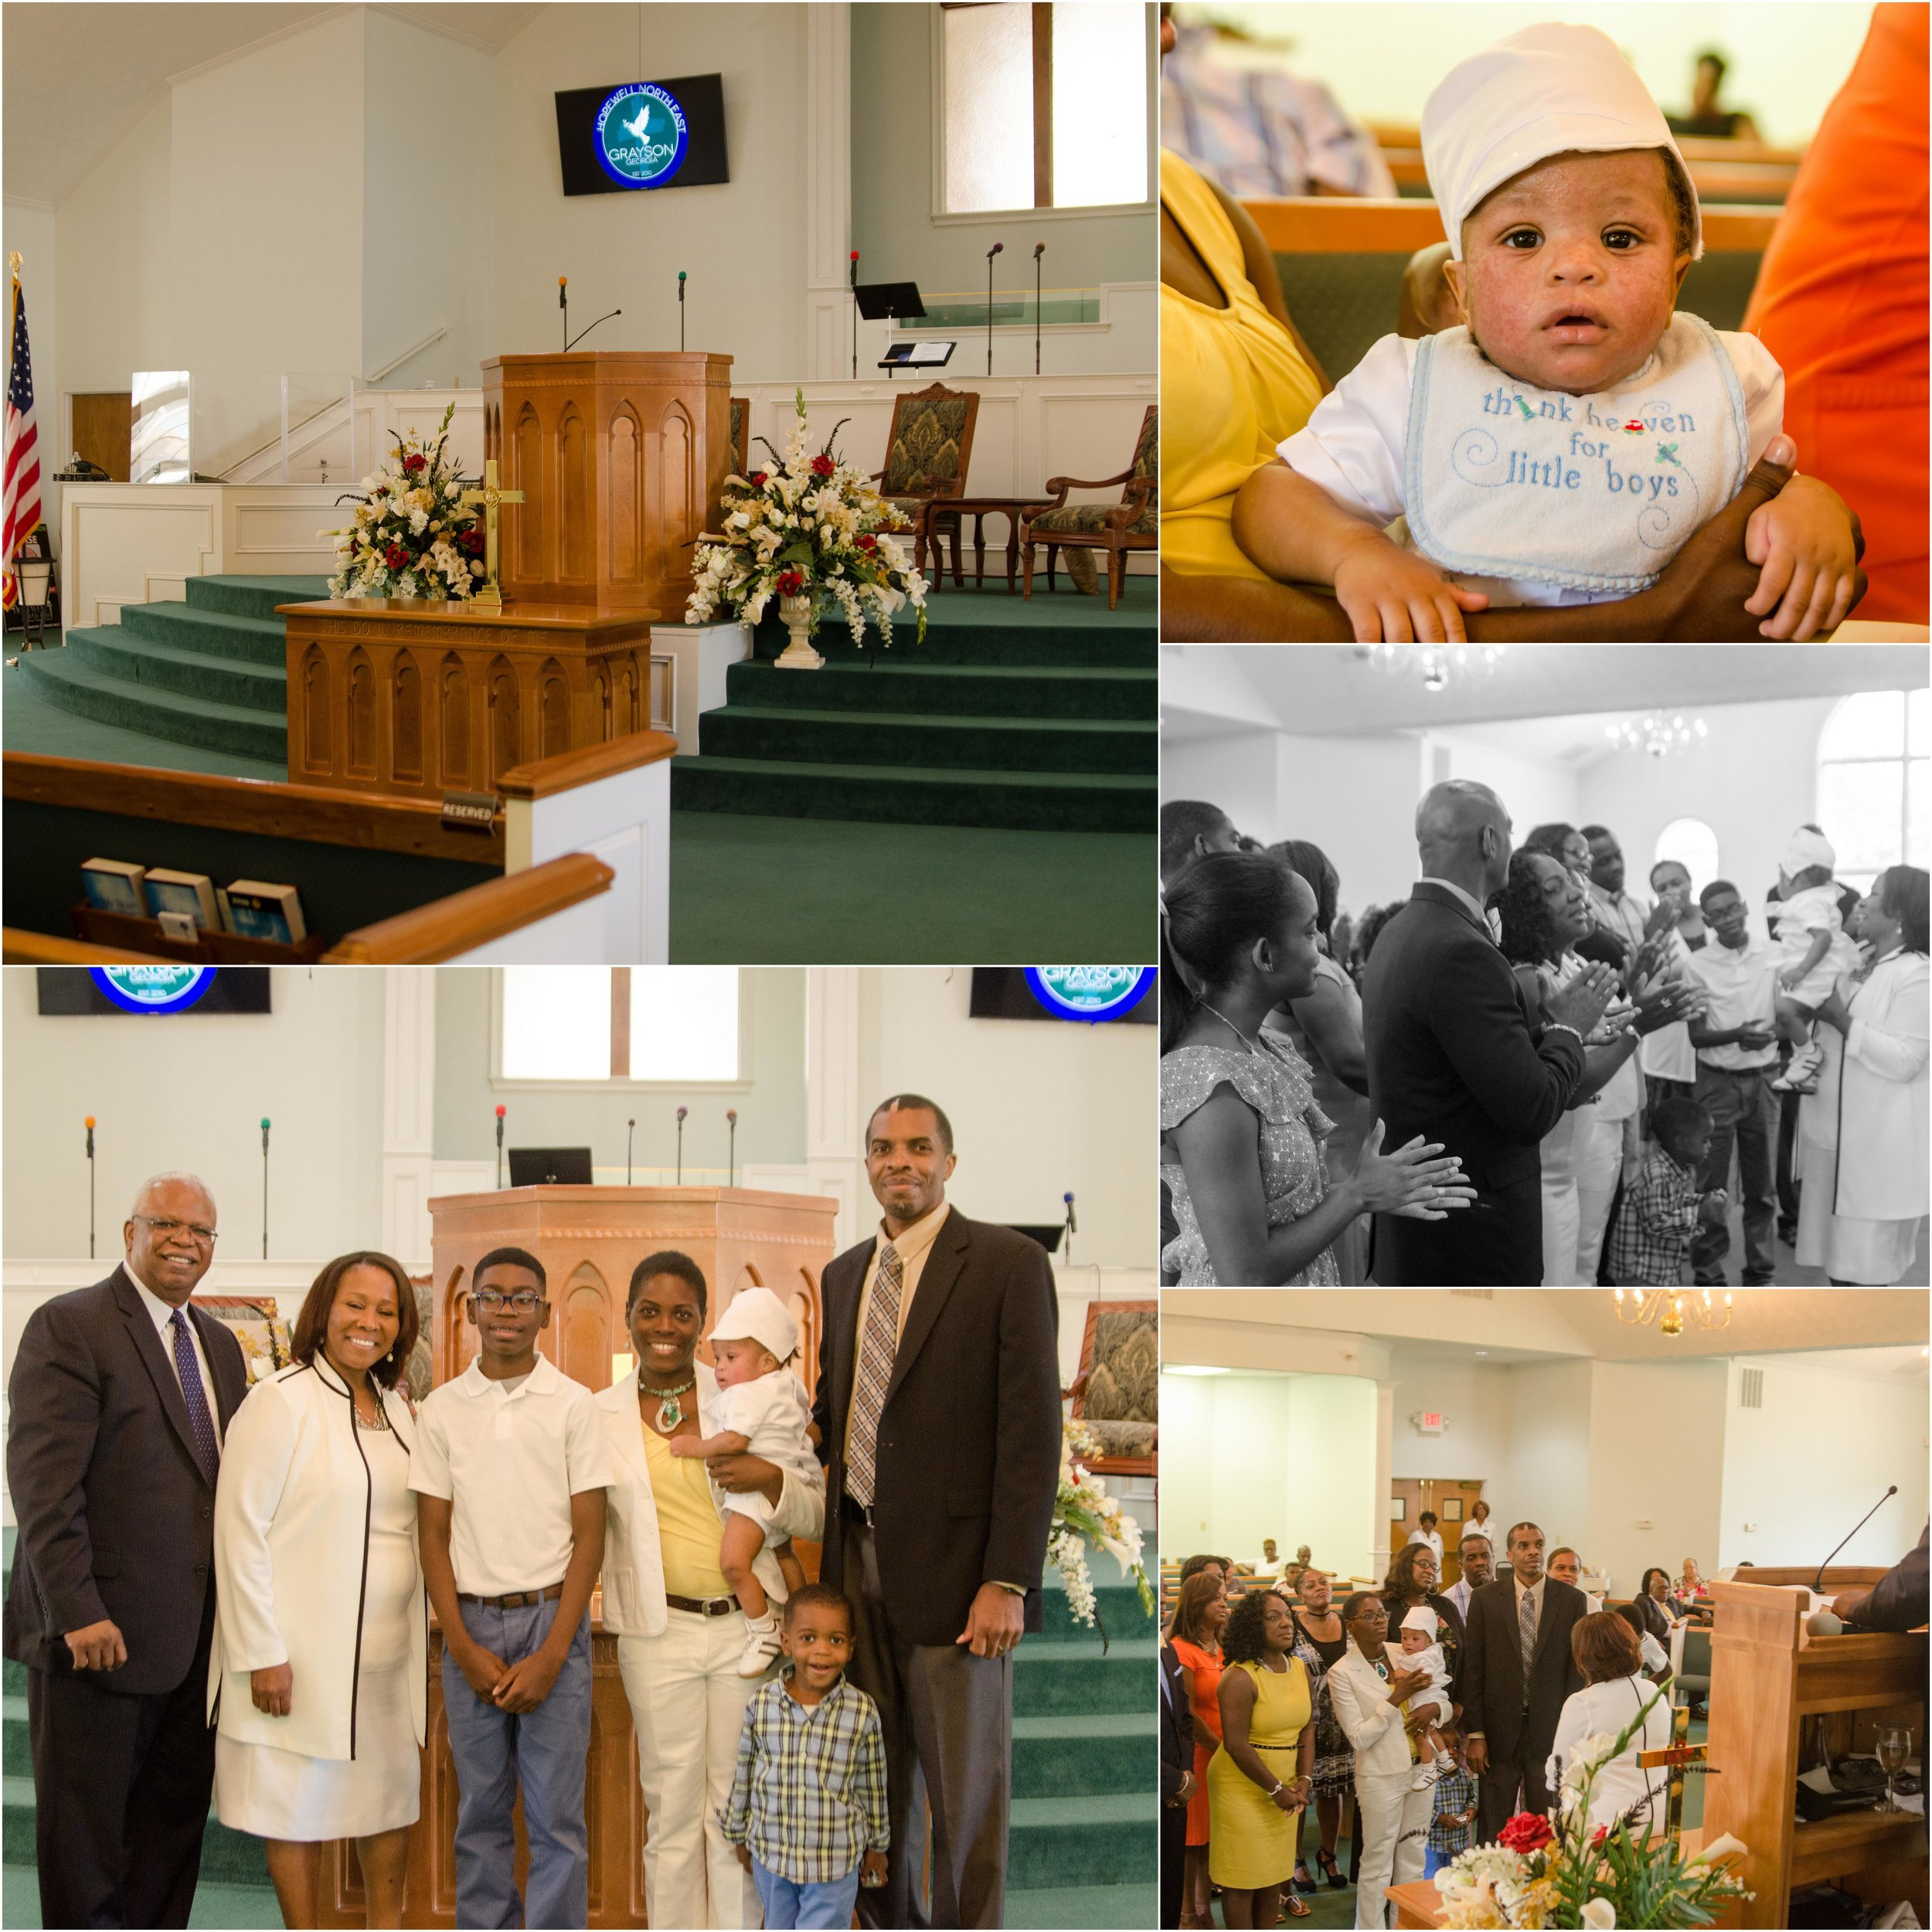 Jordan's Dedication Services- August 2018